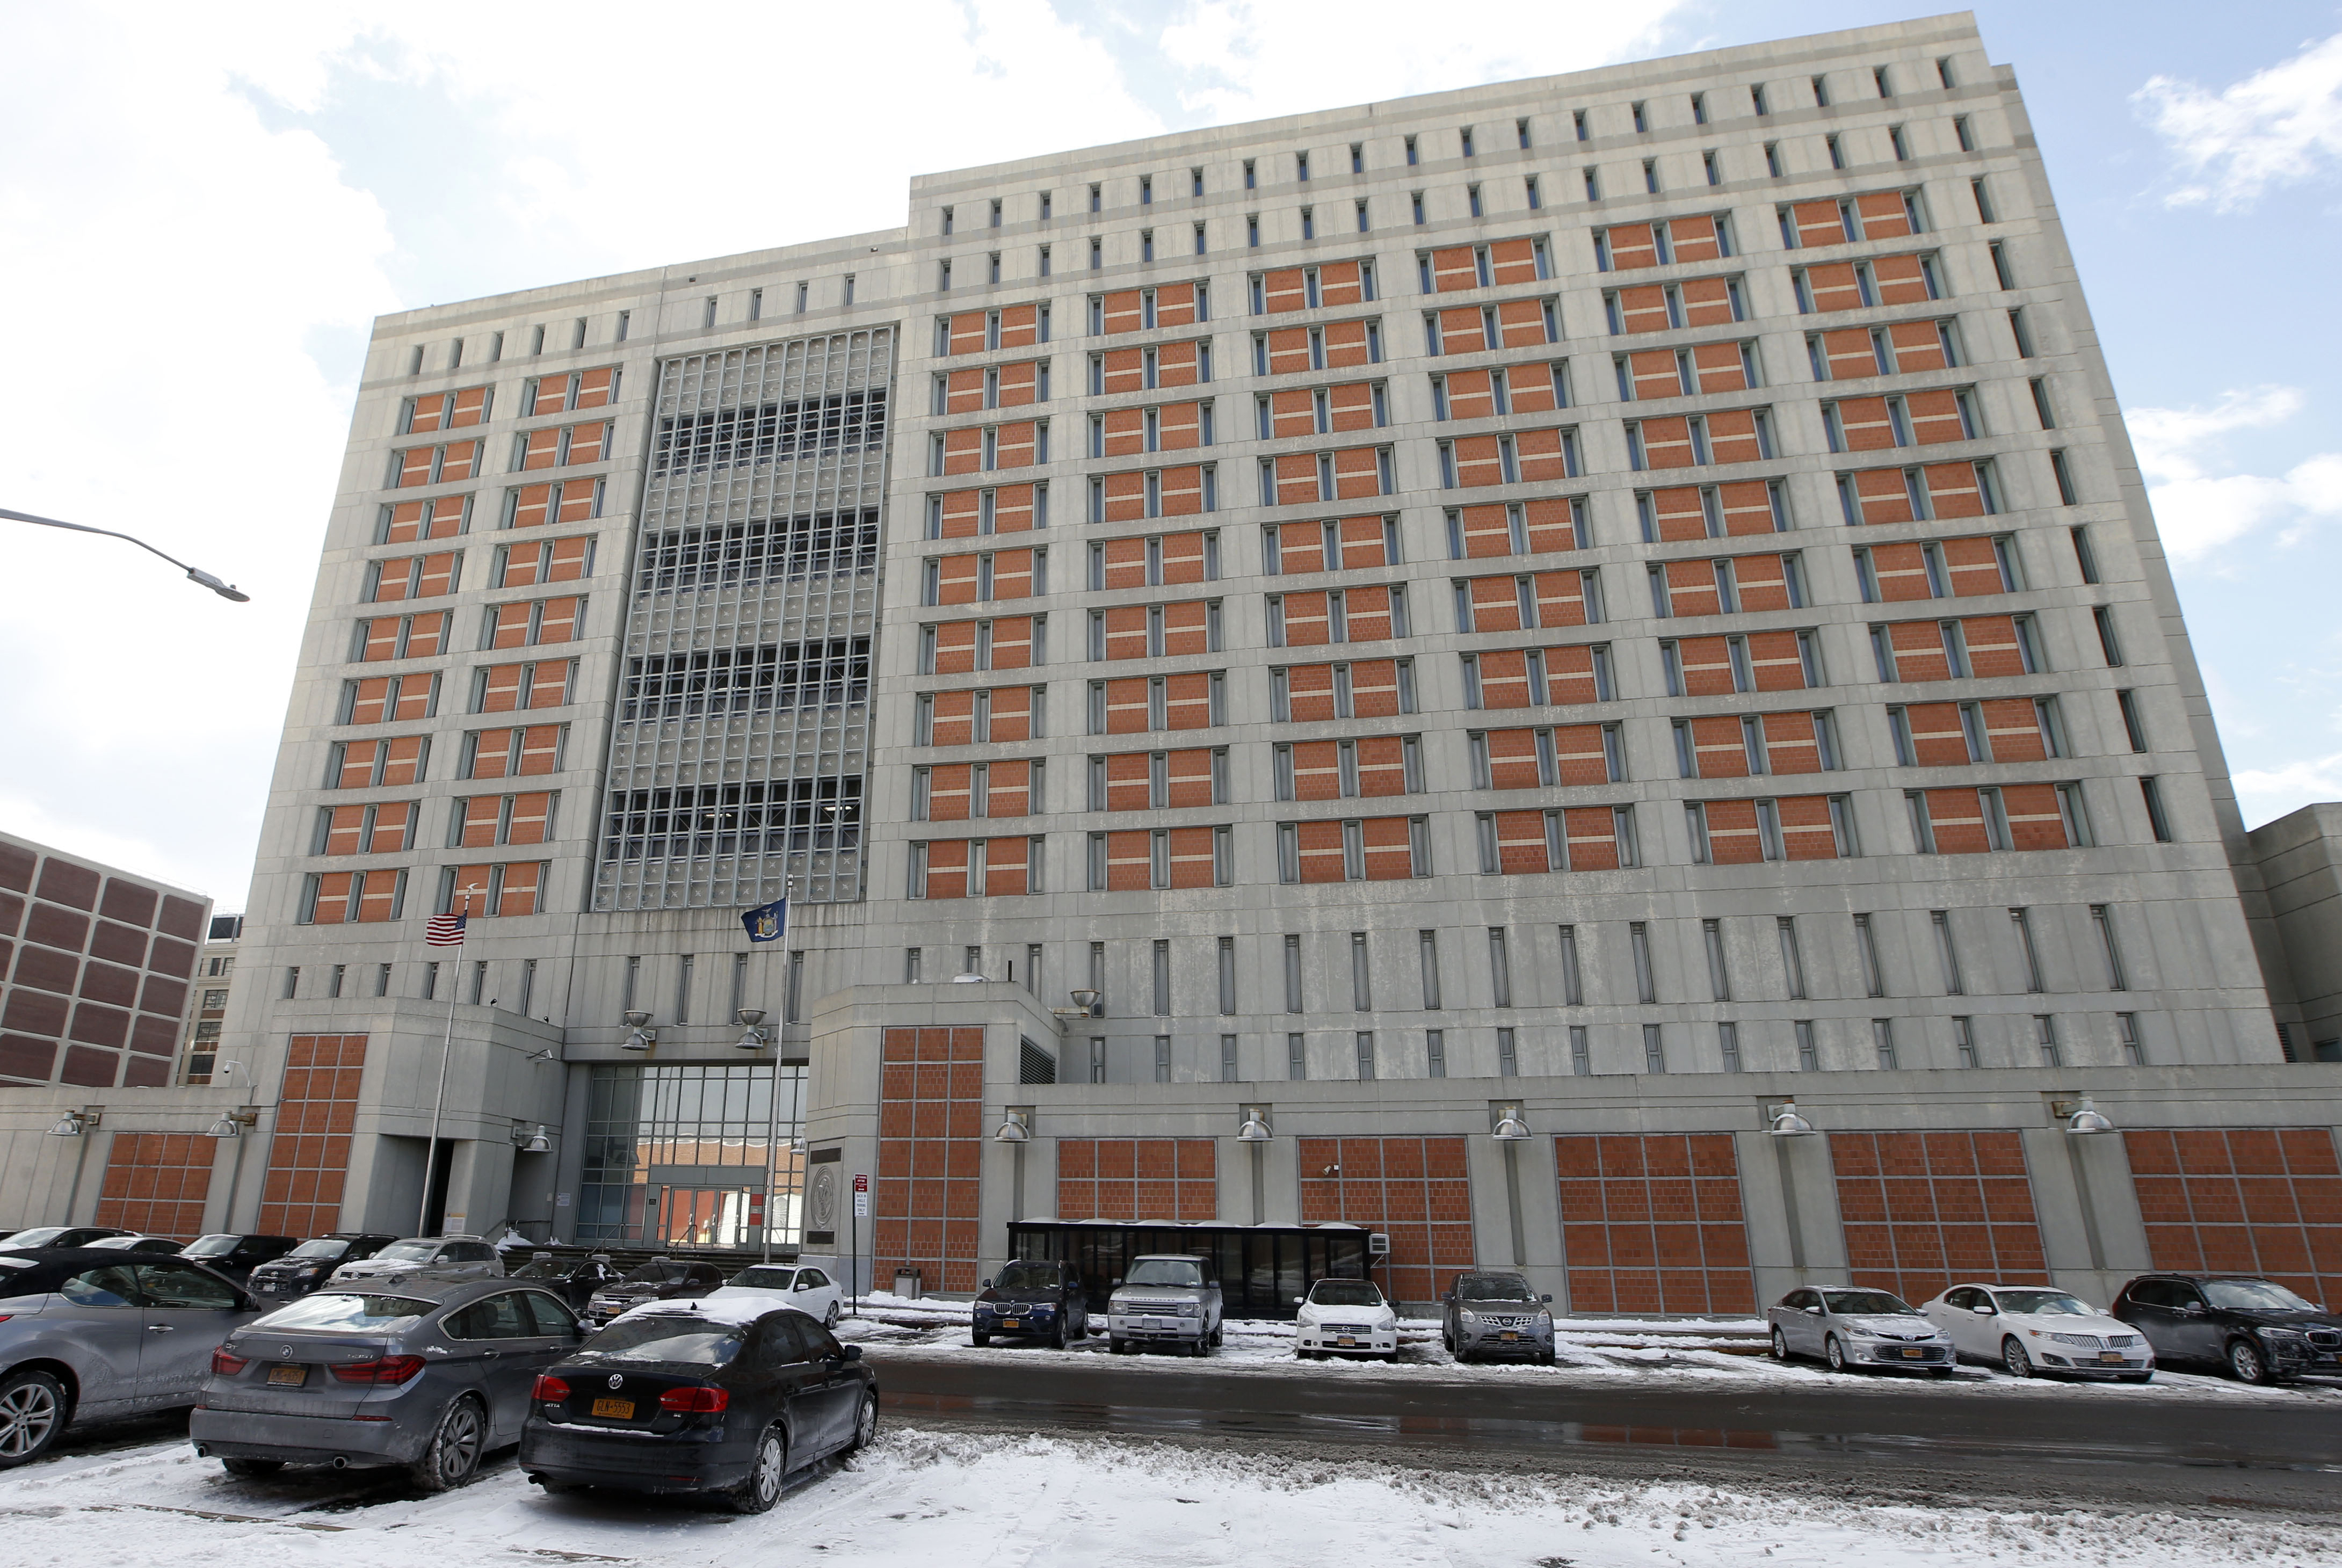 This Jan. 8, 2017 file photo shows the Metropolitan Detention Center in the Brooklyn borough of New York. The Federal Bureau of Prisons (BOP) has taken a new step in their attempt to stop the spread of coronavirus in their facilities by confining all inmates in their cells for 14 days.